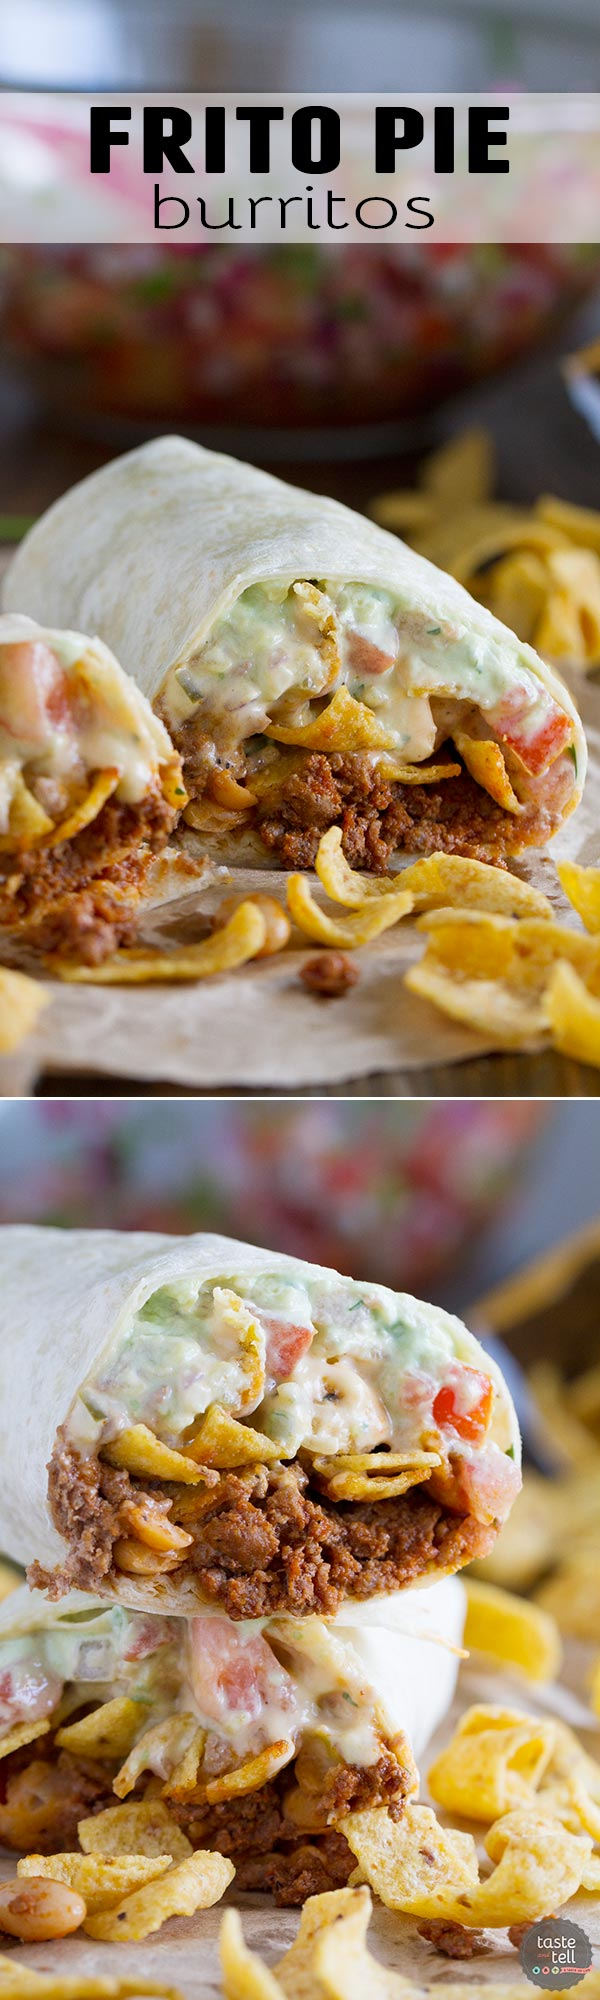 The ultimate Tex-Mex burrito - this Frito Pie Burrito is filled with chili, green chile queso, pico de gallo, avocado cream and jalapenos, all wrapped up in a tortilla.